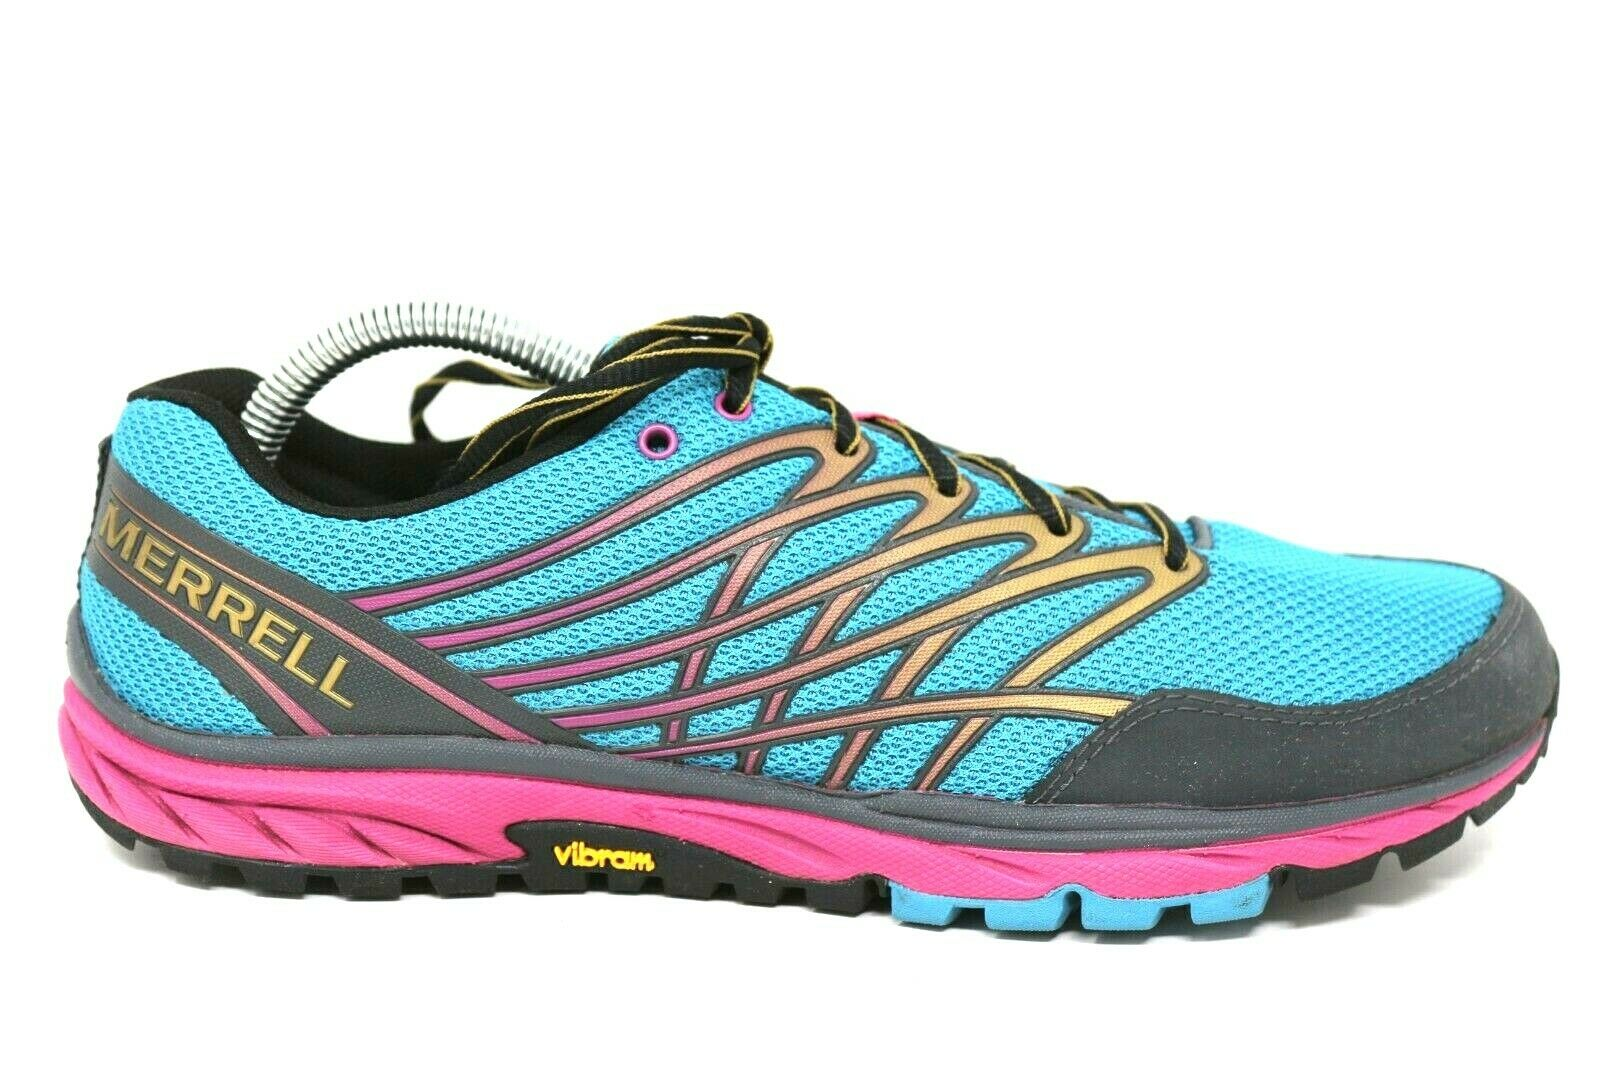 Merrell Bare Access Minimalist bluee Moongold Athletic shoes Womens Size 11